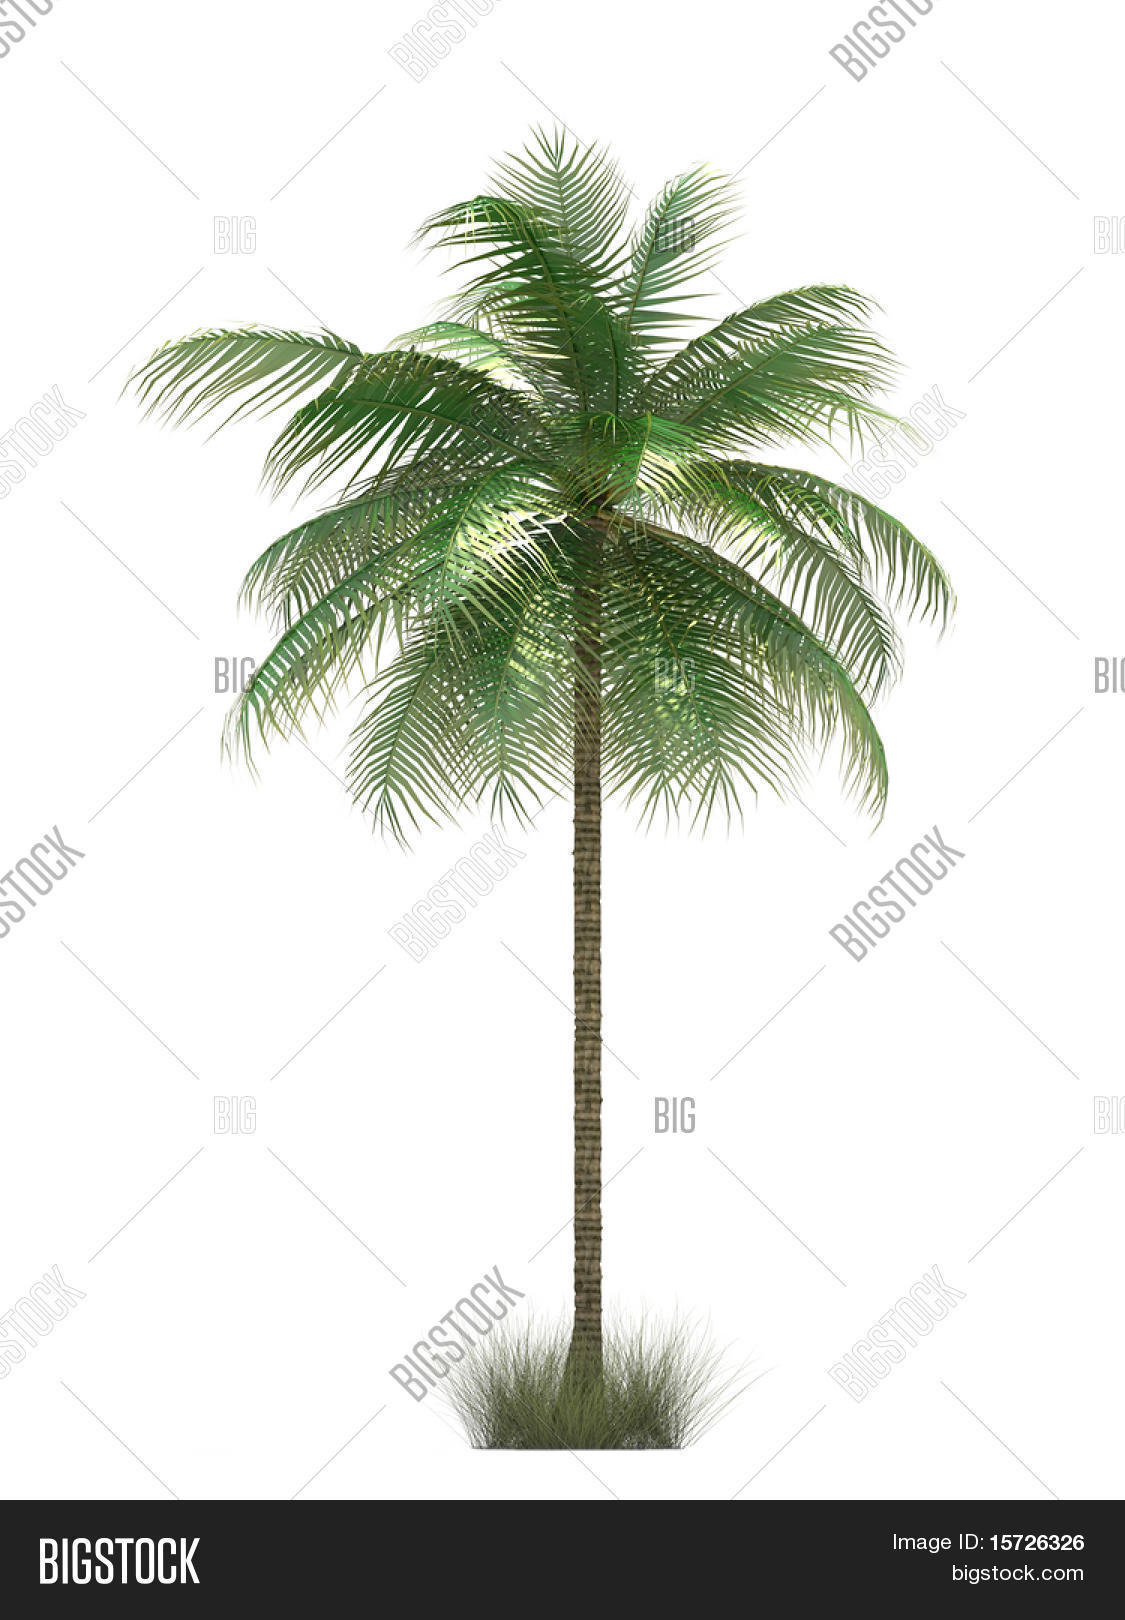 Isolated Palm Trees Image Photo Free Trial Bigstock